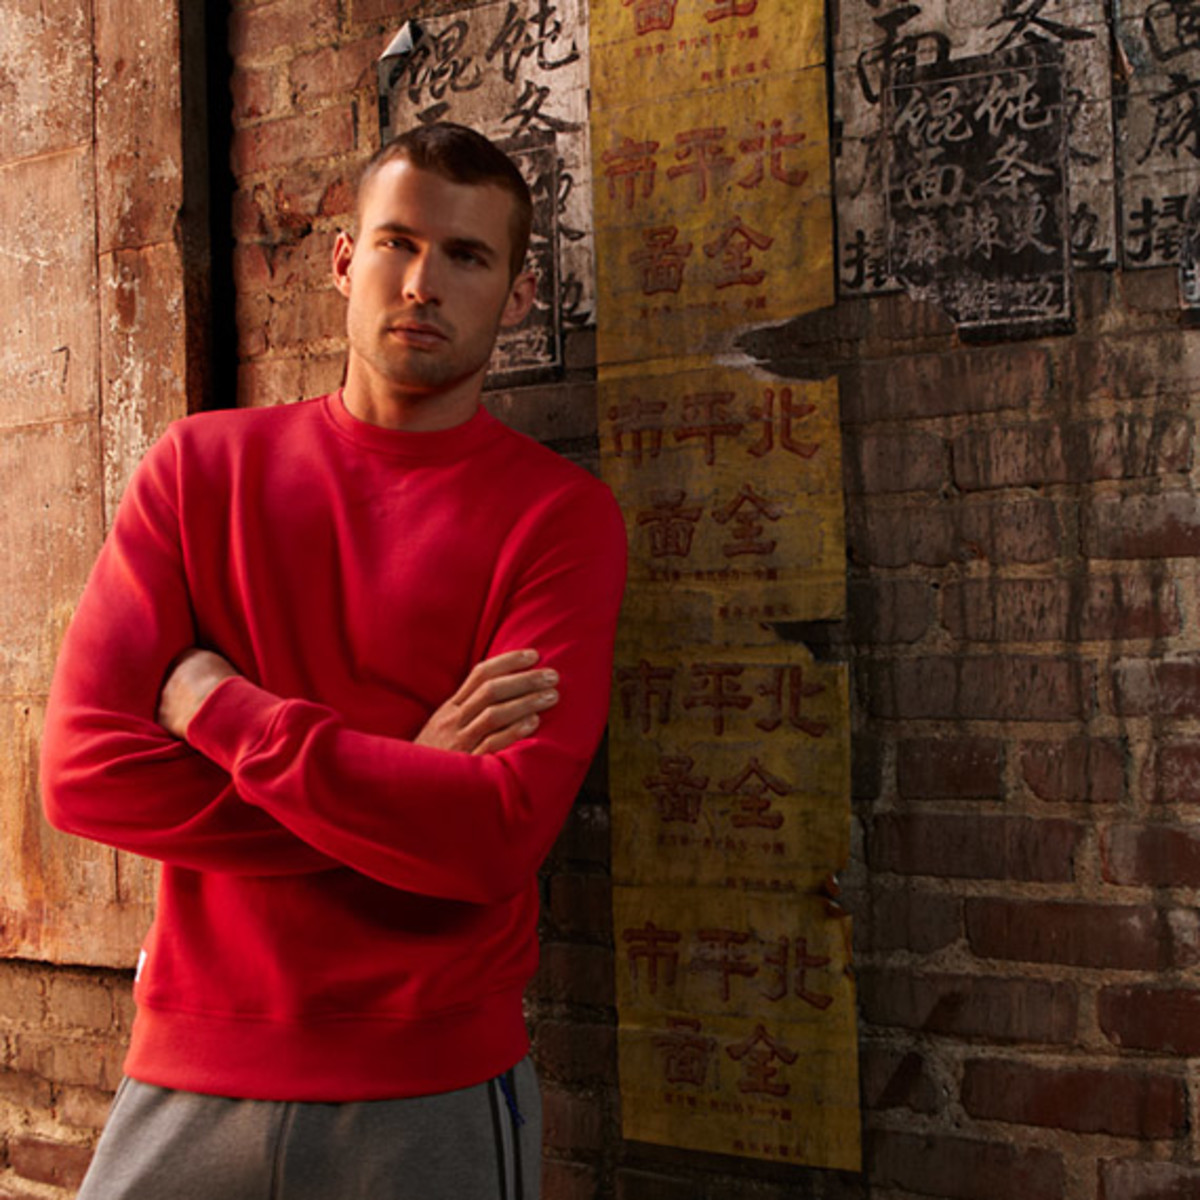 adidas-originals-david-beckham-james-bond-ss2012-04